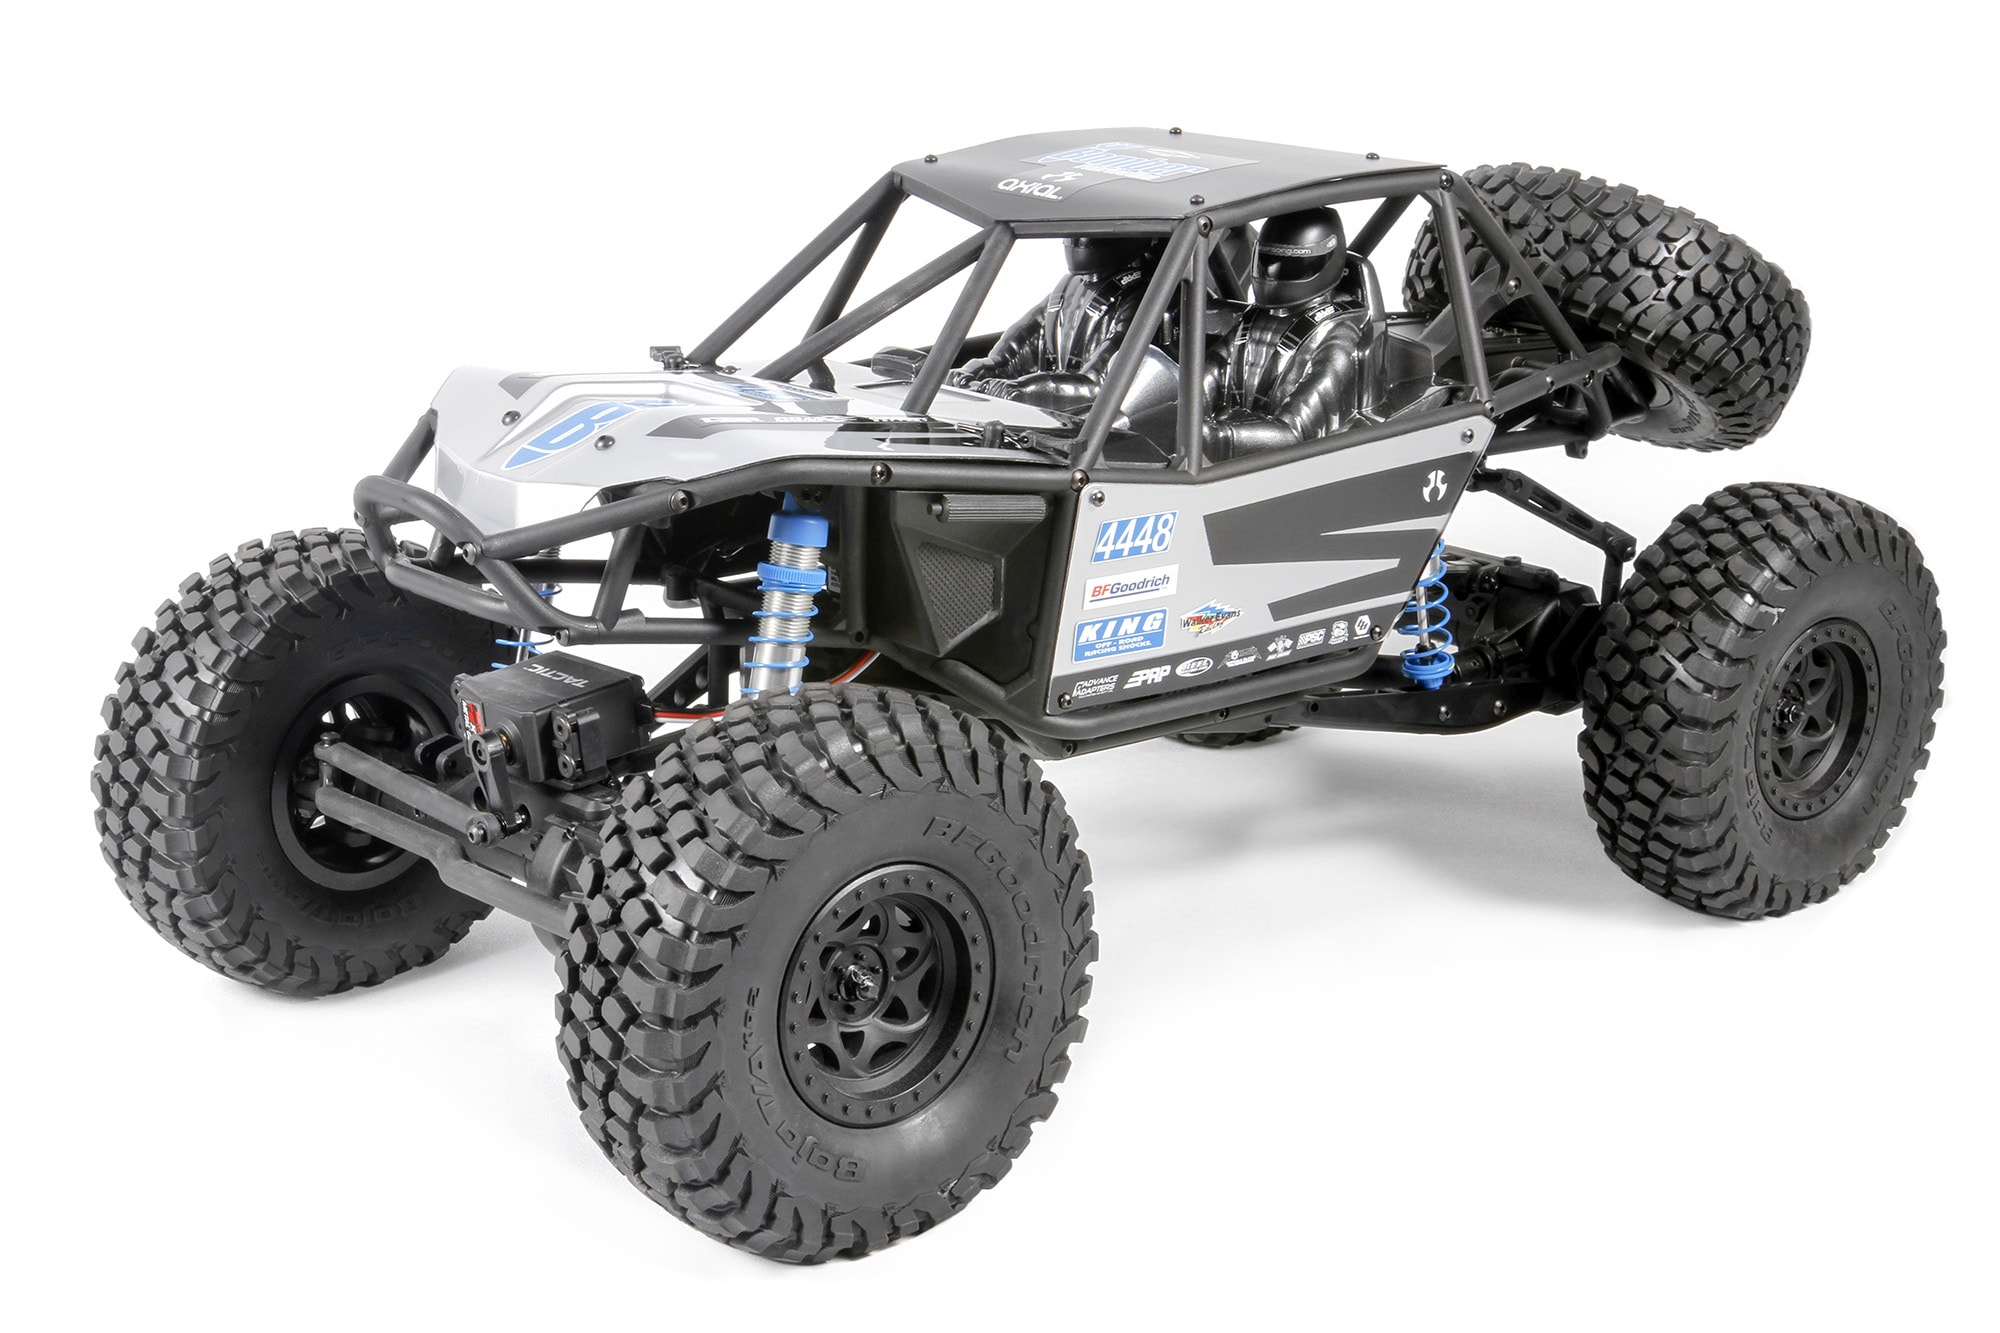 Customize Your RR10 Bomber's Appearance with Upgrade Parts from Axial